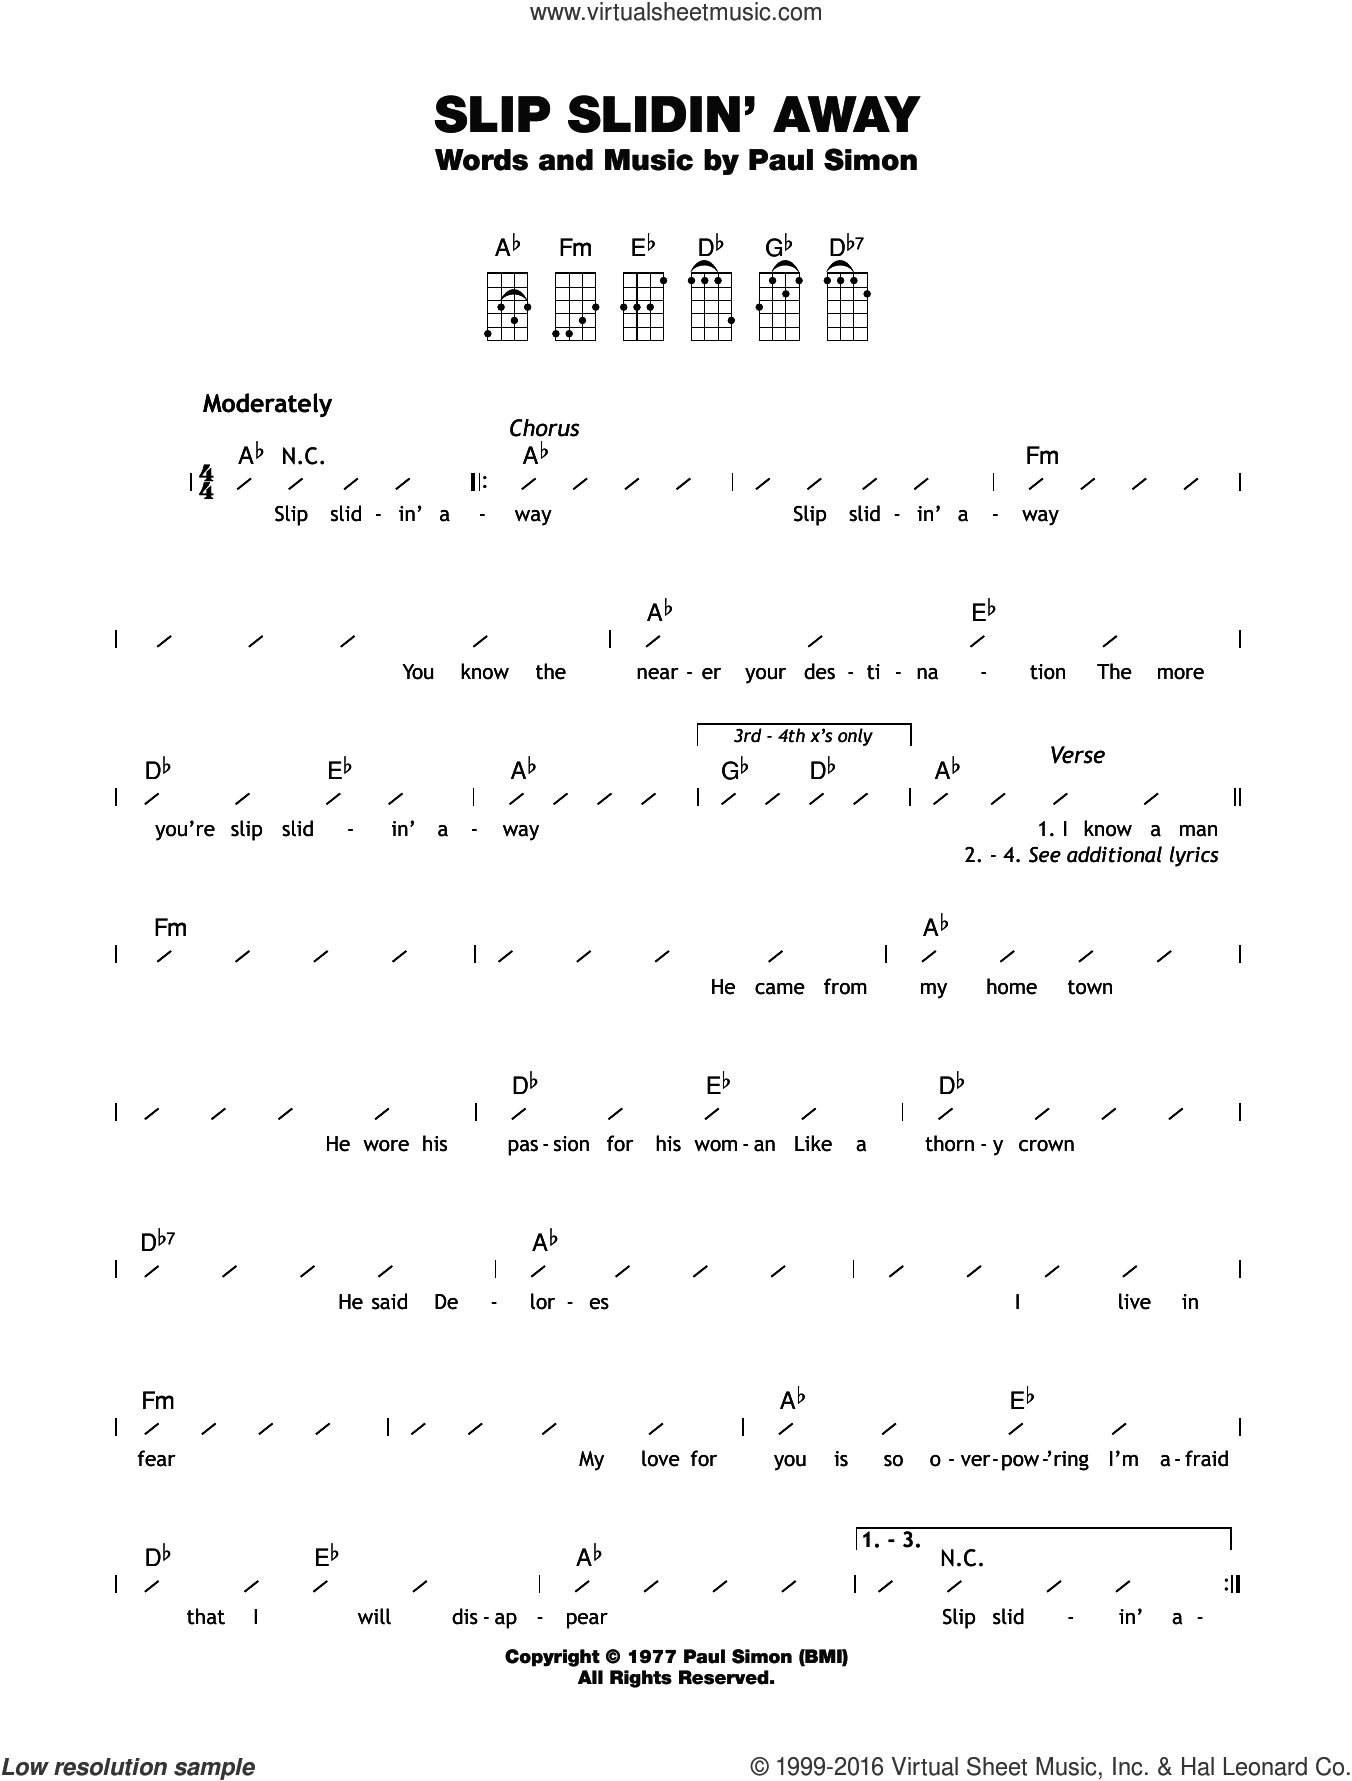 Slip sliding away guitar chords images guitar chords examples simon slip slidin away sheet music for ukulele chords slip slidin away sheet music for ukulele hexwebz Images